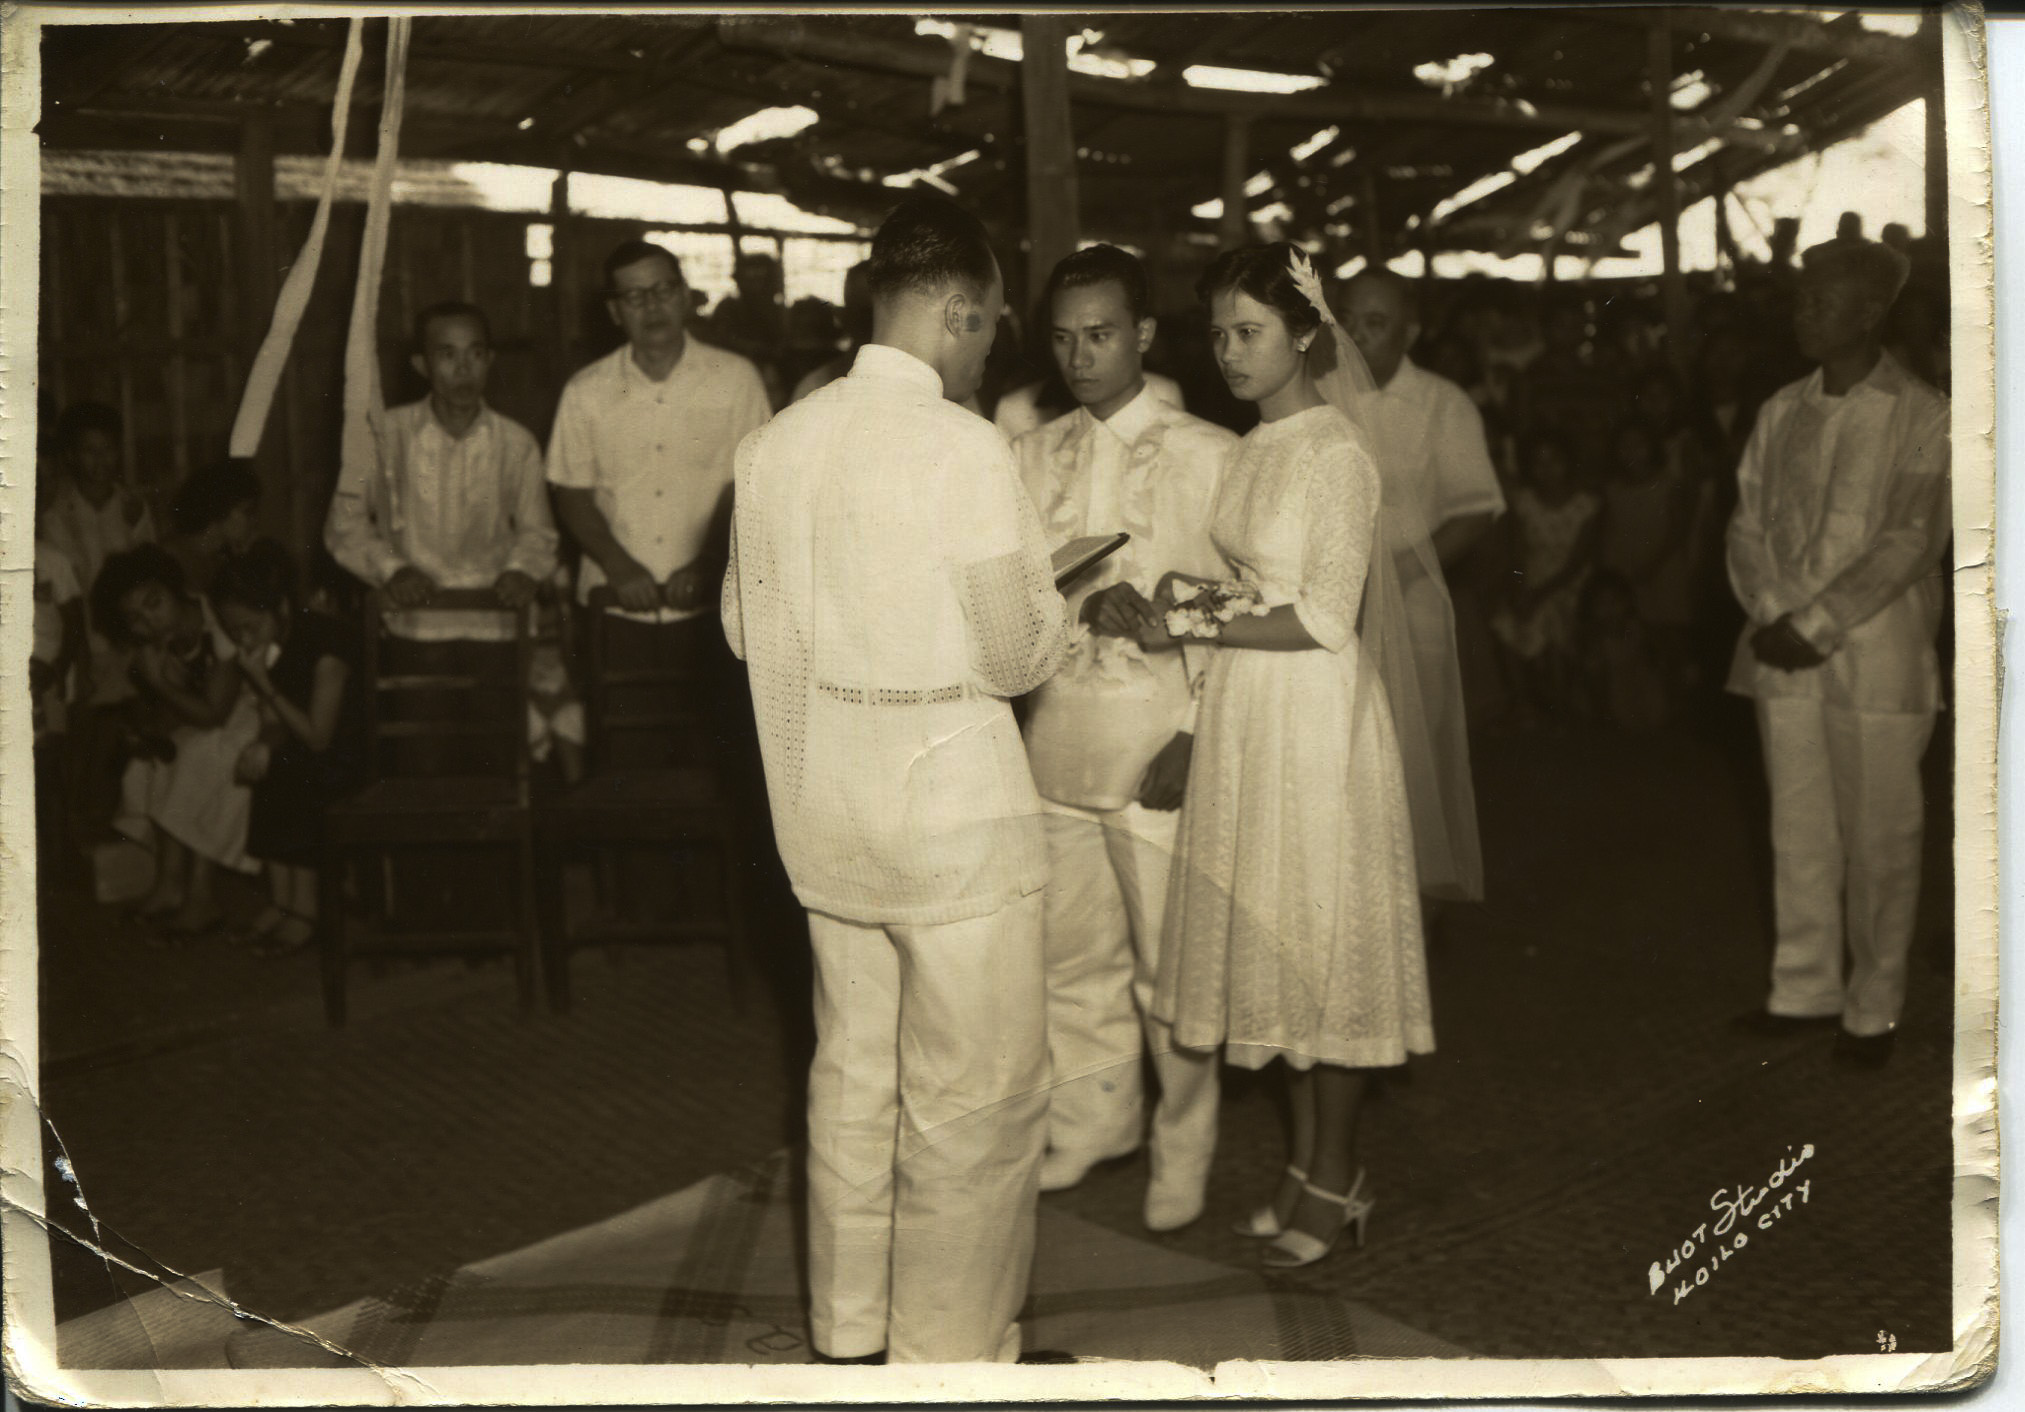 "Photo of Arguelles' parents' wedding, 1958. Arguelles acquired it in 2011 after her dad died. The photo was taken on Nasidman Island, Iloilo at Arguelles' parent's wedding. The wedding took place in Aglipay Church, which was an Indigenous religion mixed with Catholicism. Text on the photo says: ""Buot Studio Iloilo City"". Pictured: Pastor, Jose Arguelles (dad ""Tay""), Magdalena (mom ""Nay""), Pedro B Molina (maternal grandfather, mayor of Ajuy). Arguelles' mom was an oldest child. She was the first nurse in her family and sent all her siblings to school. Arguelles' dad was a second child and also sent all his siblings to school. Arguelles said her parents coming together is symbolic of the future of the Philippines at that time. Her parent's generation is still very involved in the Philippines. Hundreds of people like them helped others, though they themselves came from nothing.   Any views, findings, conclusions, or recommendations expressed in this story do not necessarily represent those of the National Endowment for the Humanities. [Copyright] Field Museum of Natural History - CC BY-NC"